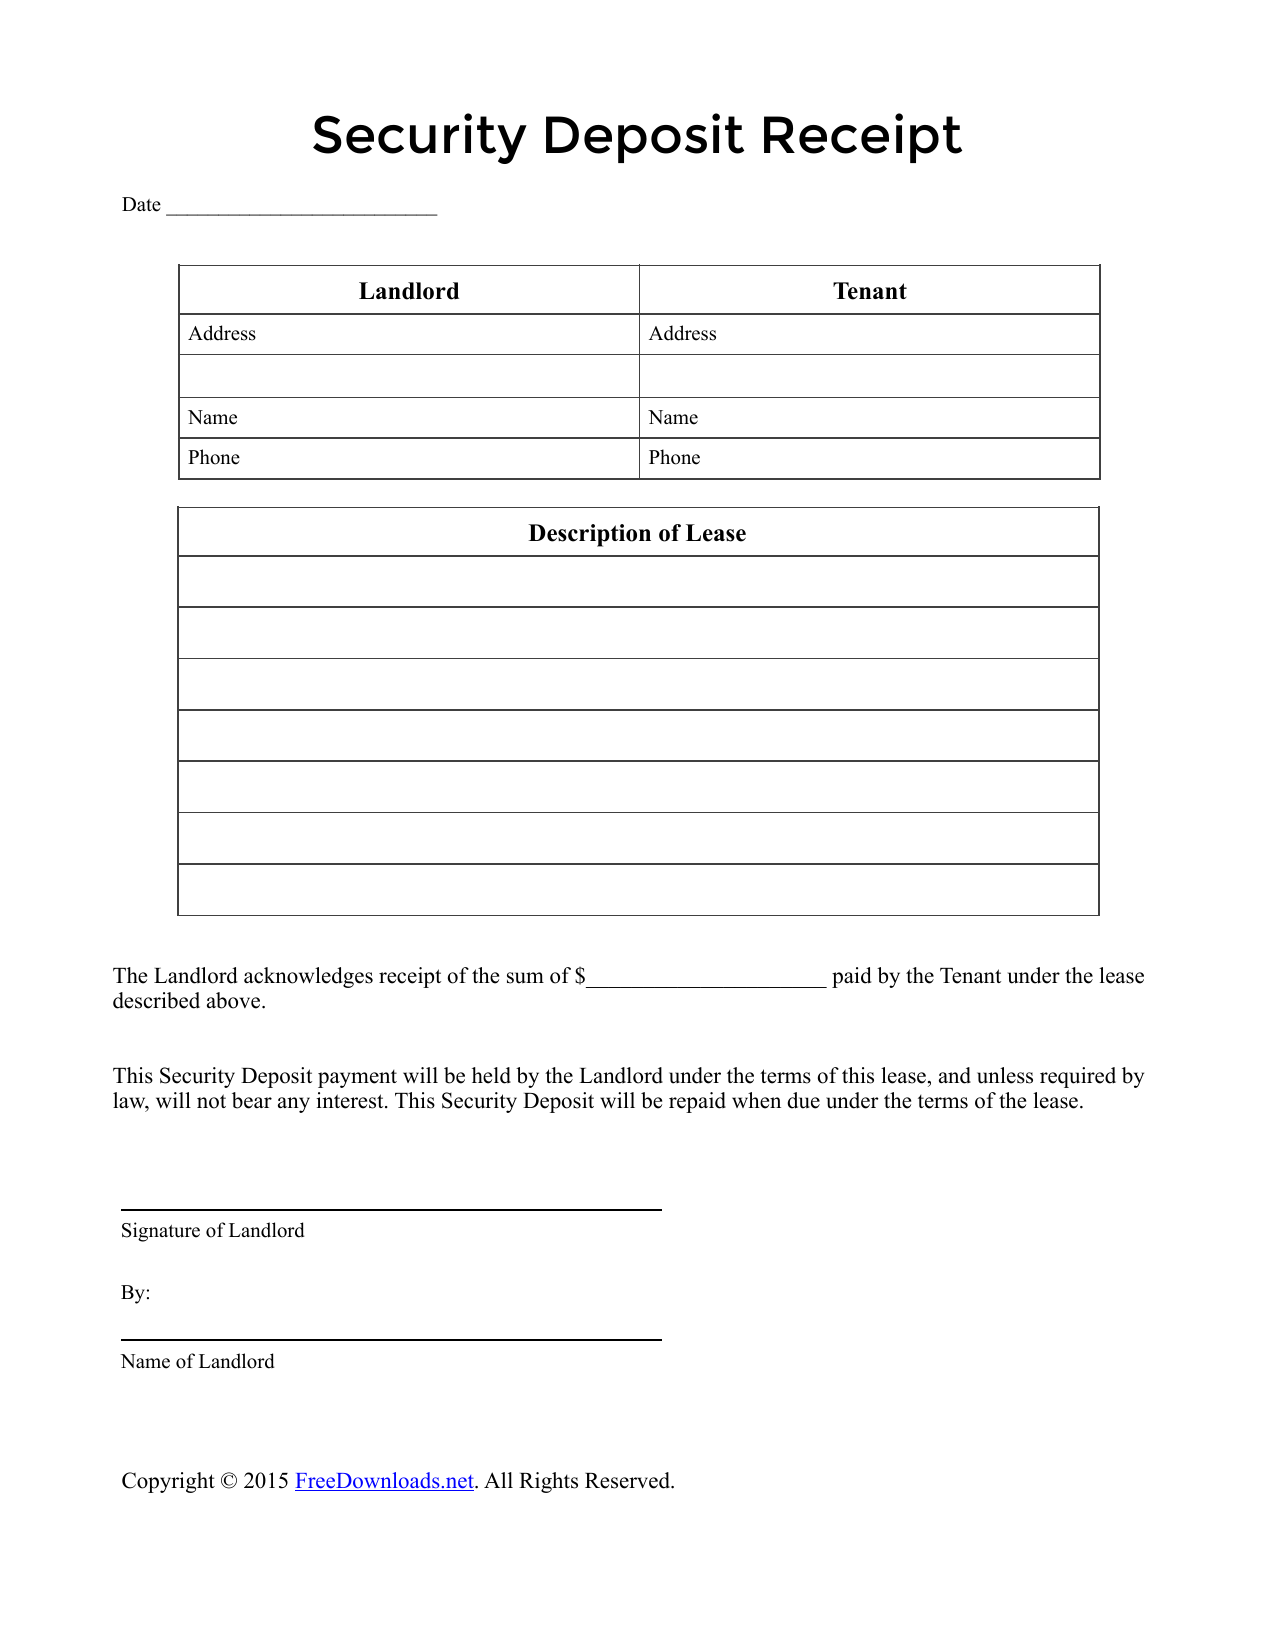 security deposit receipt template Download Security Deposit Receipt Template | PDF | RTF | Word ...